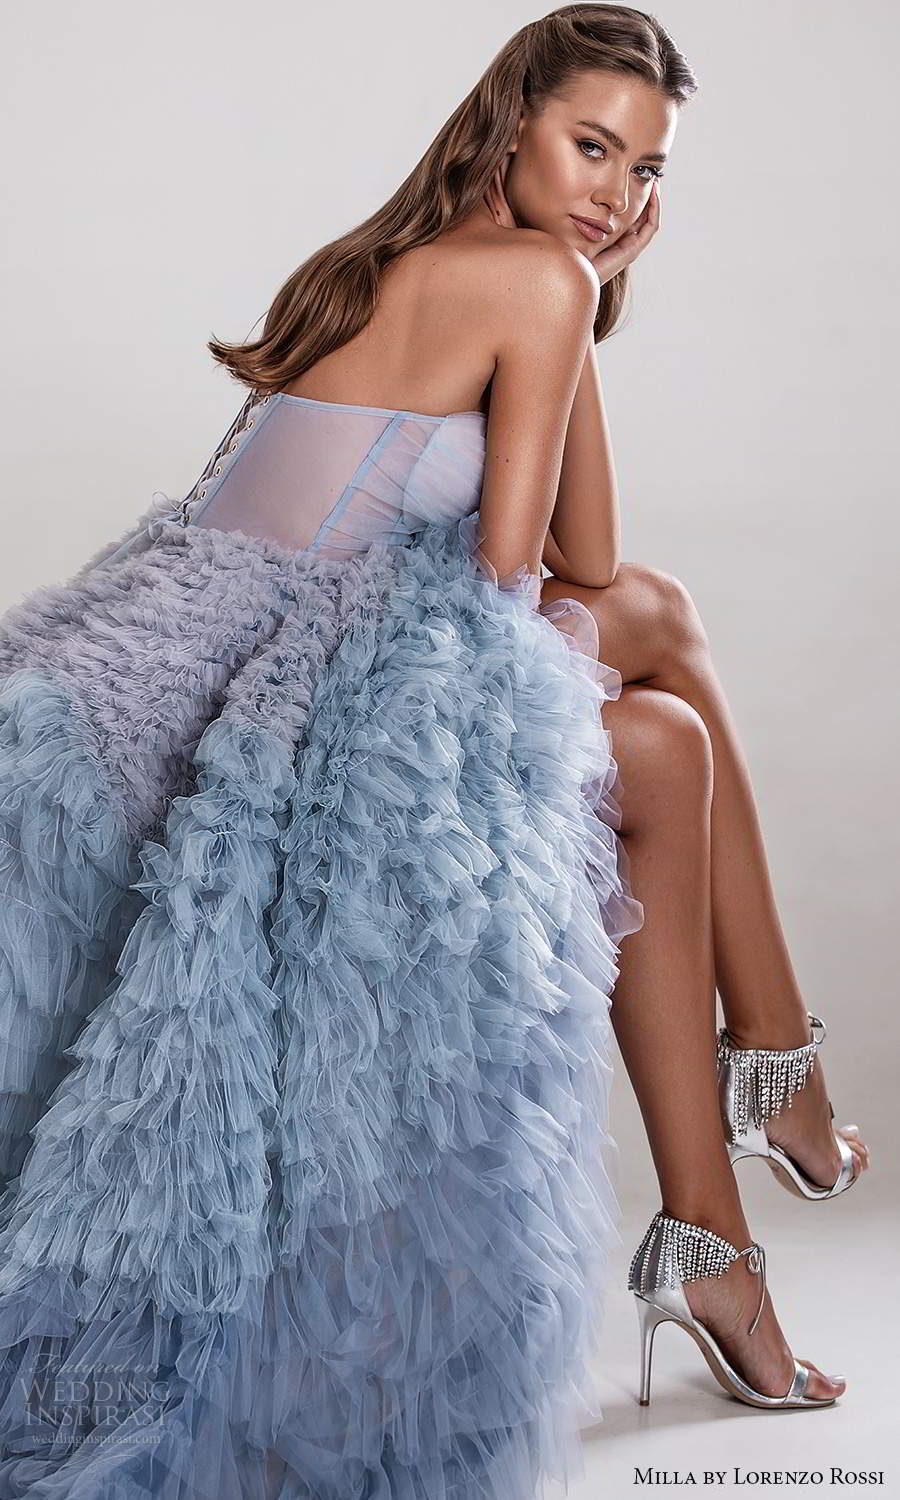 milla by lorenzo rossi 2020 rtw strapless sweetheart neckline ruched corset bodice a line ball gown wedding dress ruffle skirt ombre blue (17) zsv